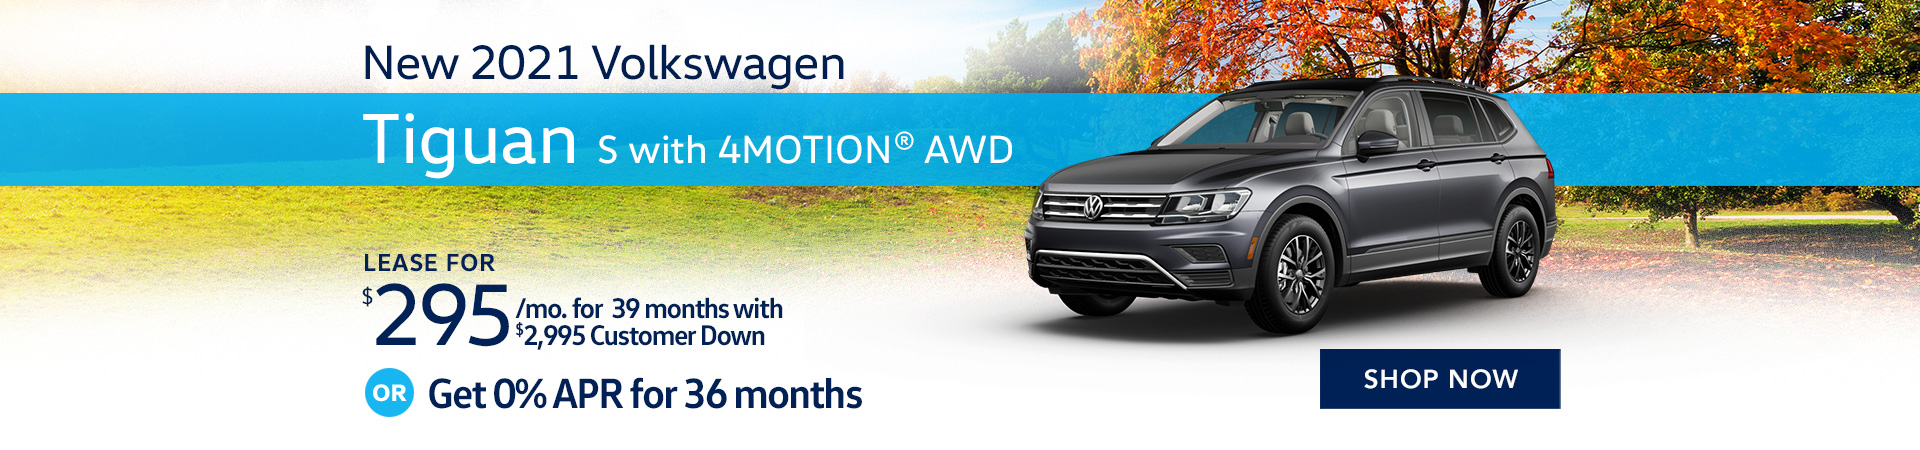 BVW_1920x450_New 2021 Volkswagen Tiguan S with 4MOTION® AWD_09'21